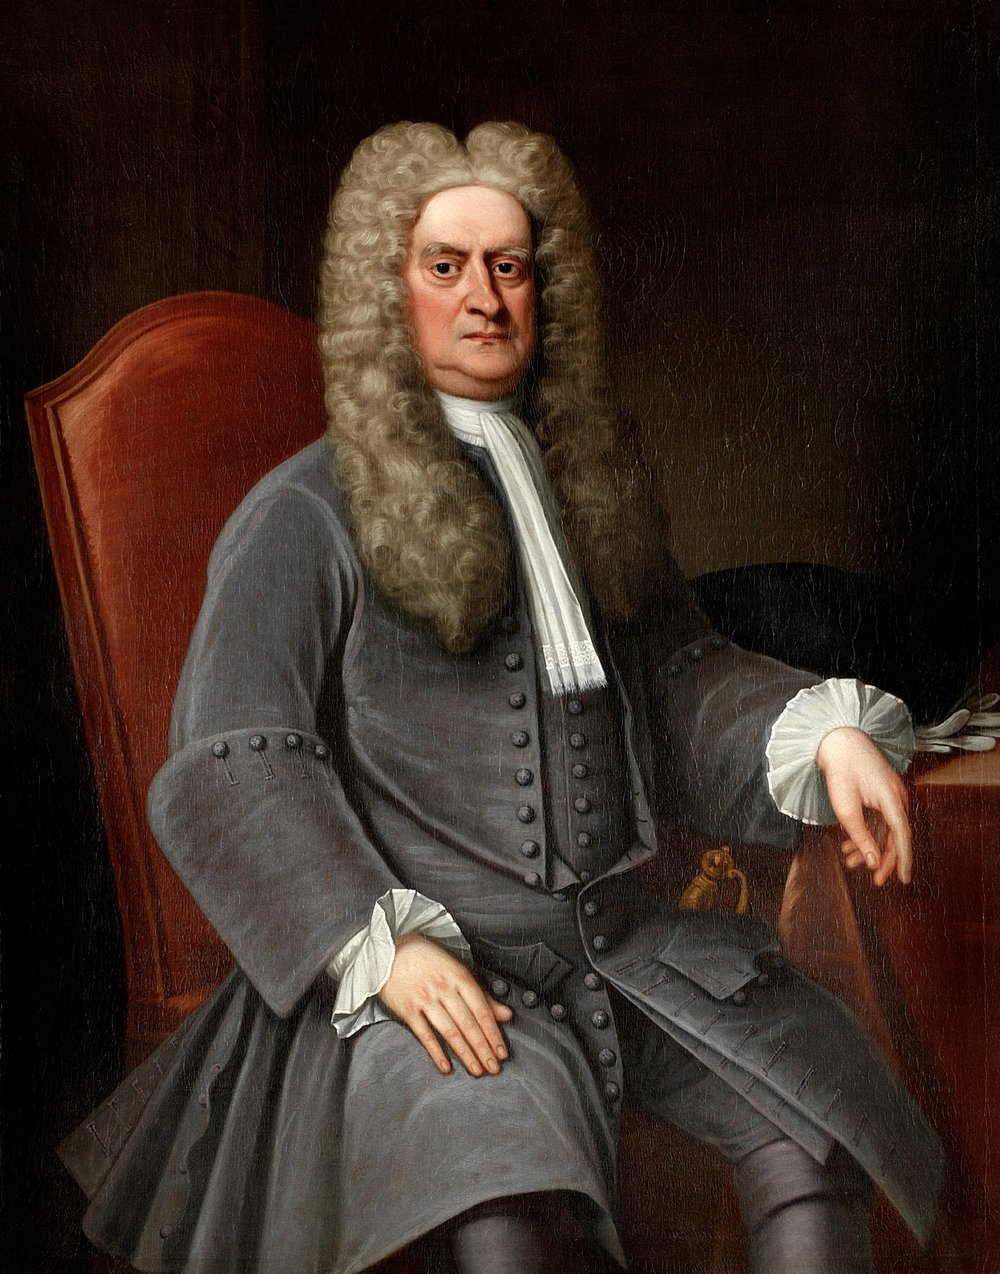 Sir Isaac Newton, painted by a member of the English School around 1715